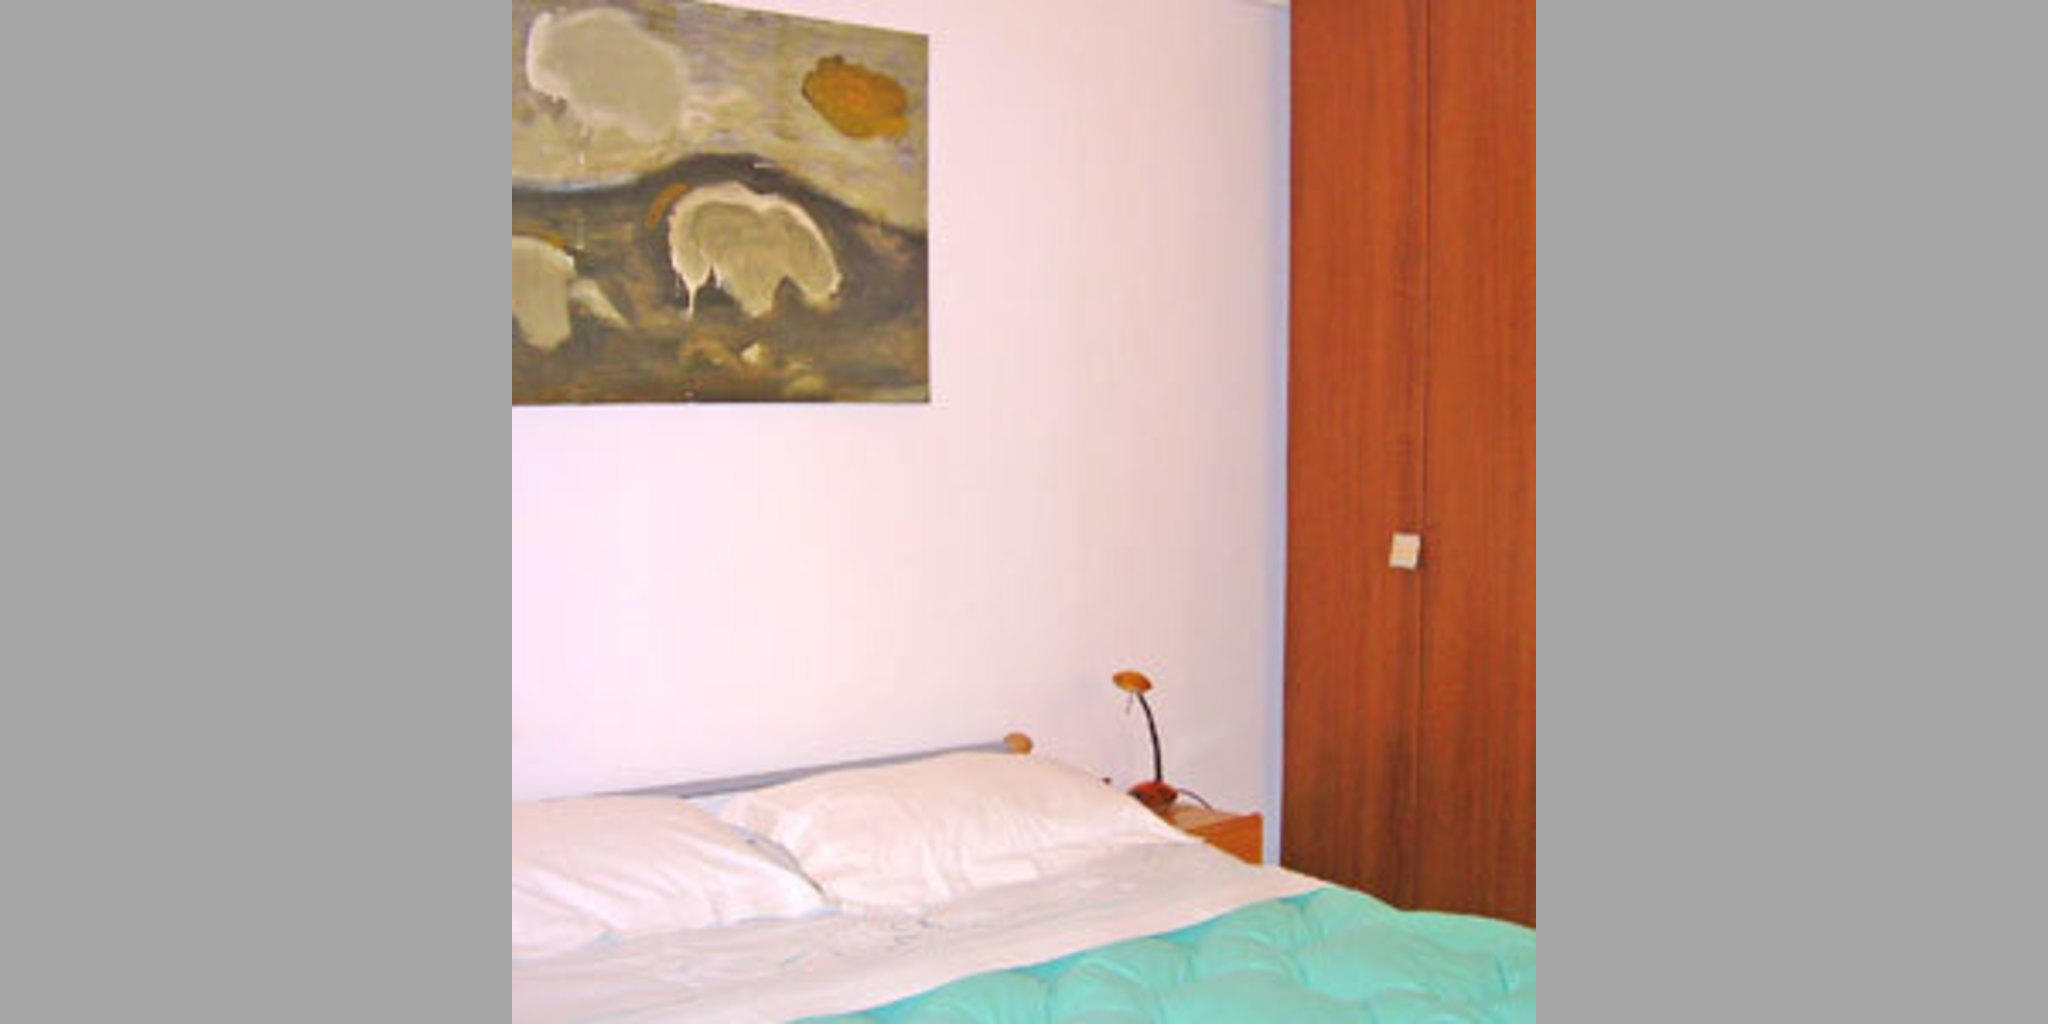 Bed & Breakfast Molfetta - San Vincenzo